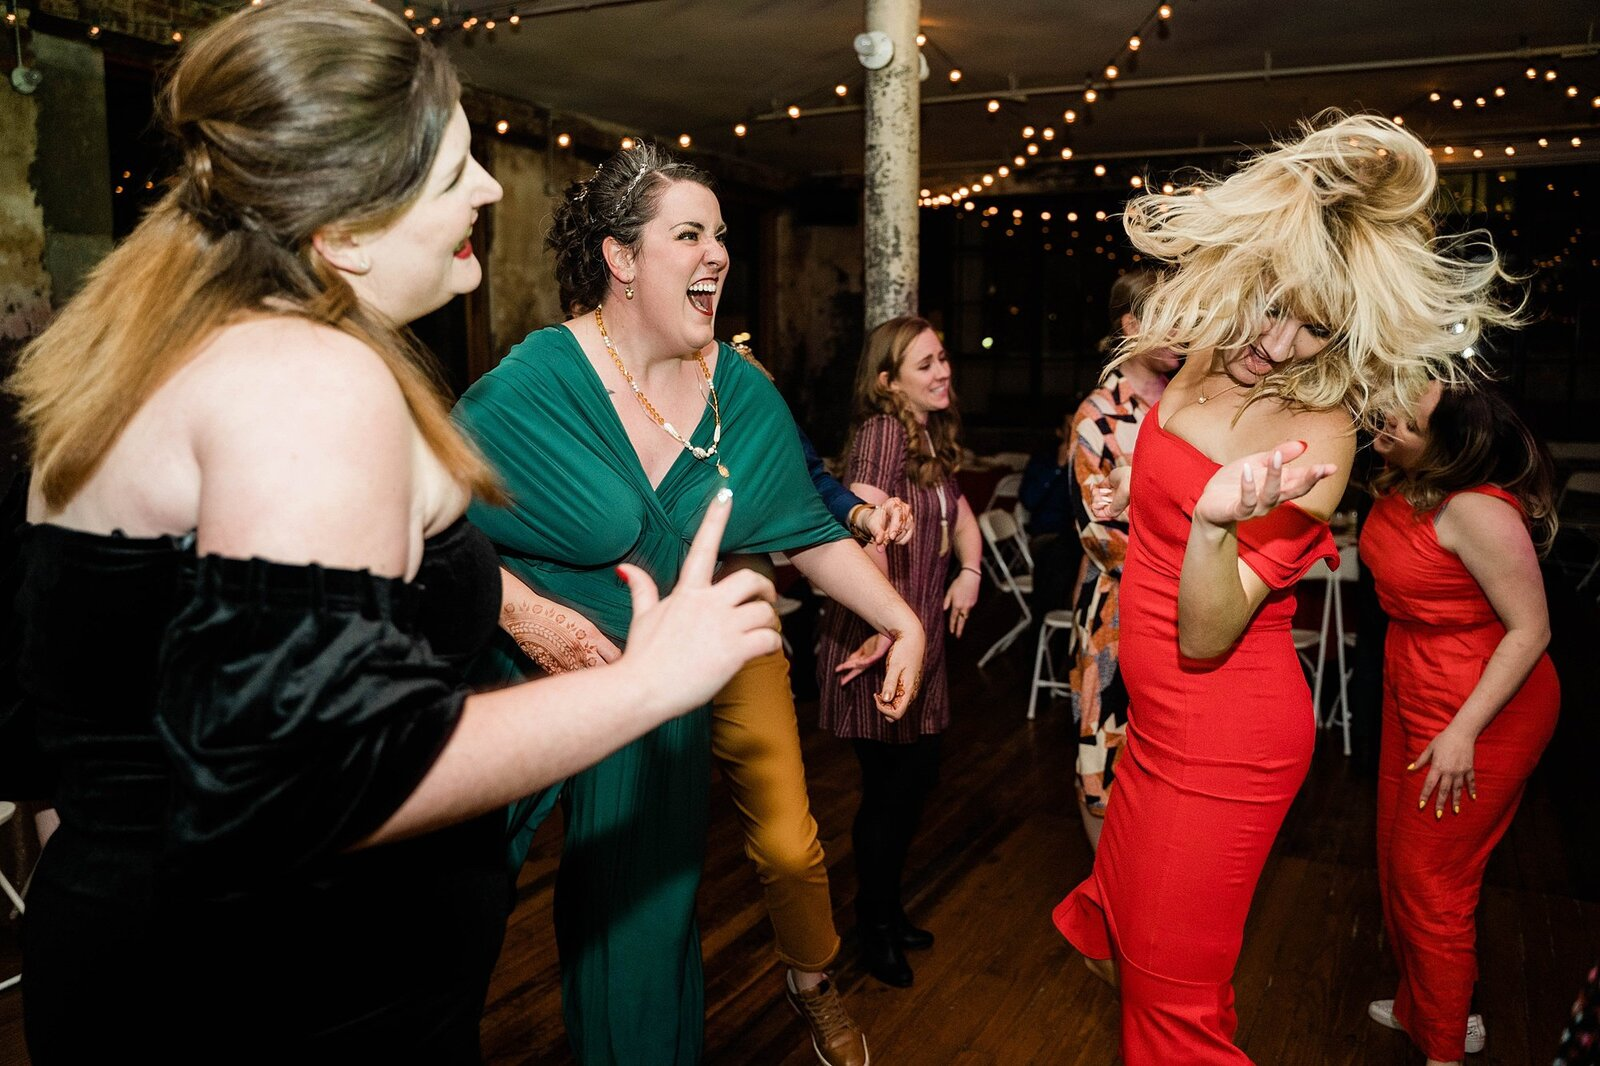 Wedding guest dances with bride at the bauer event space